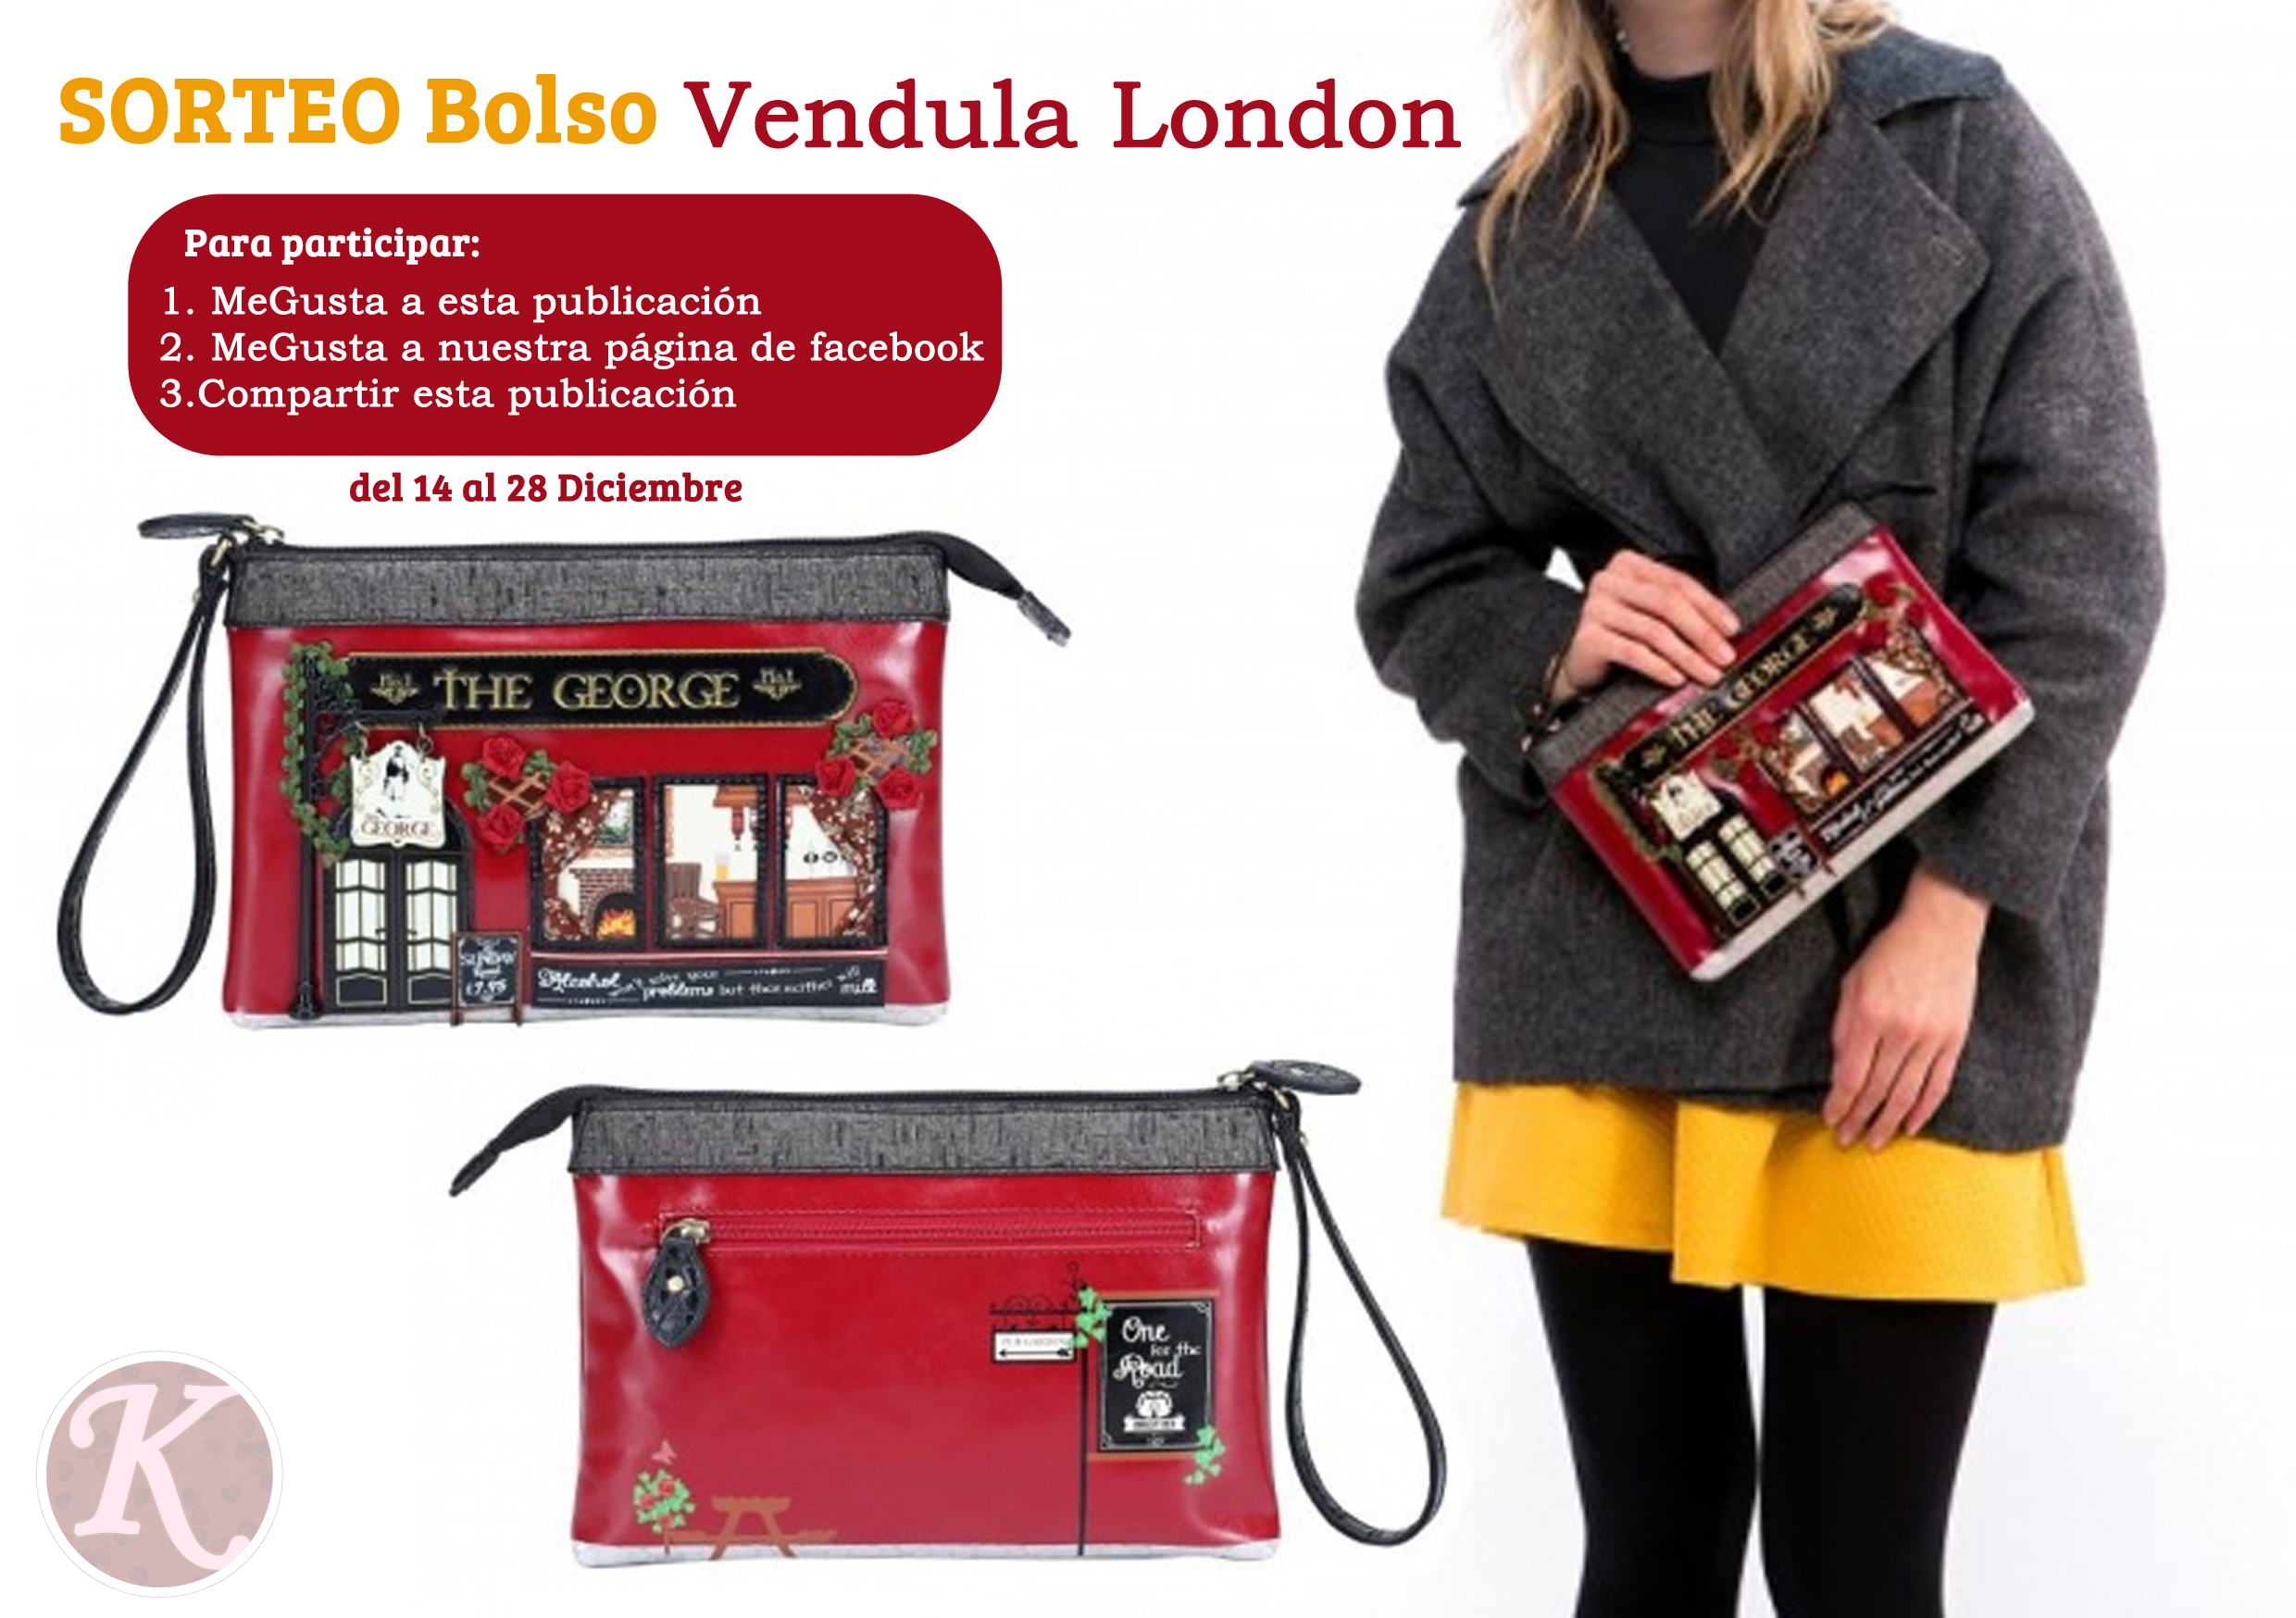 SORTEO Bolso Vendula London